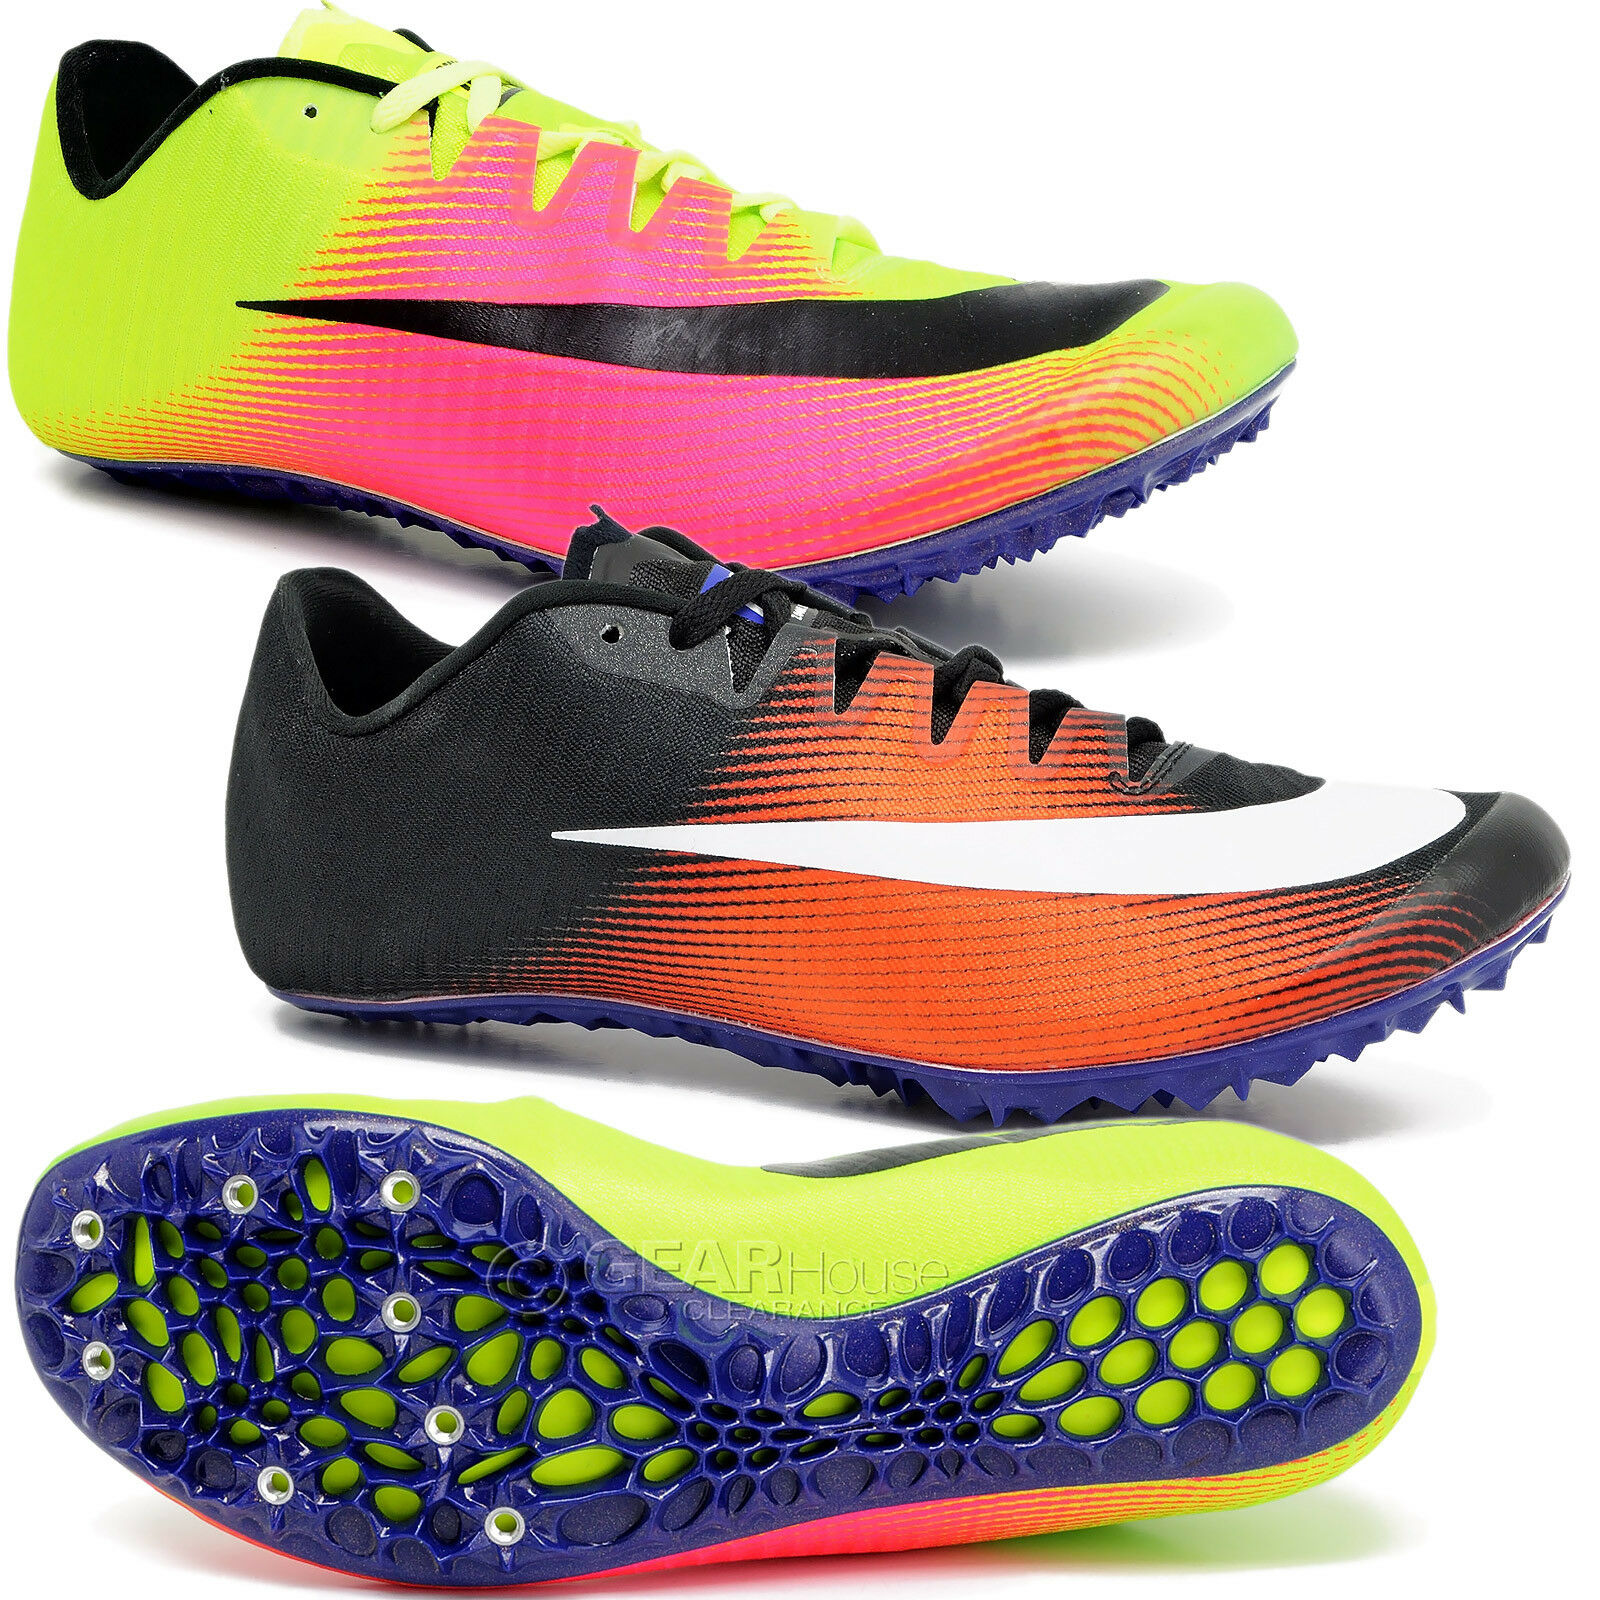 e96741abf5f7 New Nike Zoom JA Fly 3 Mens Track   Field Spikes Sprint Racing Running  Shoes фото